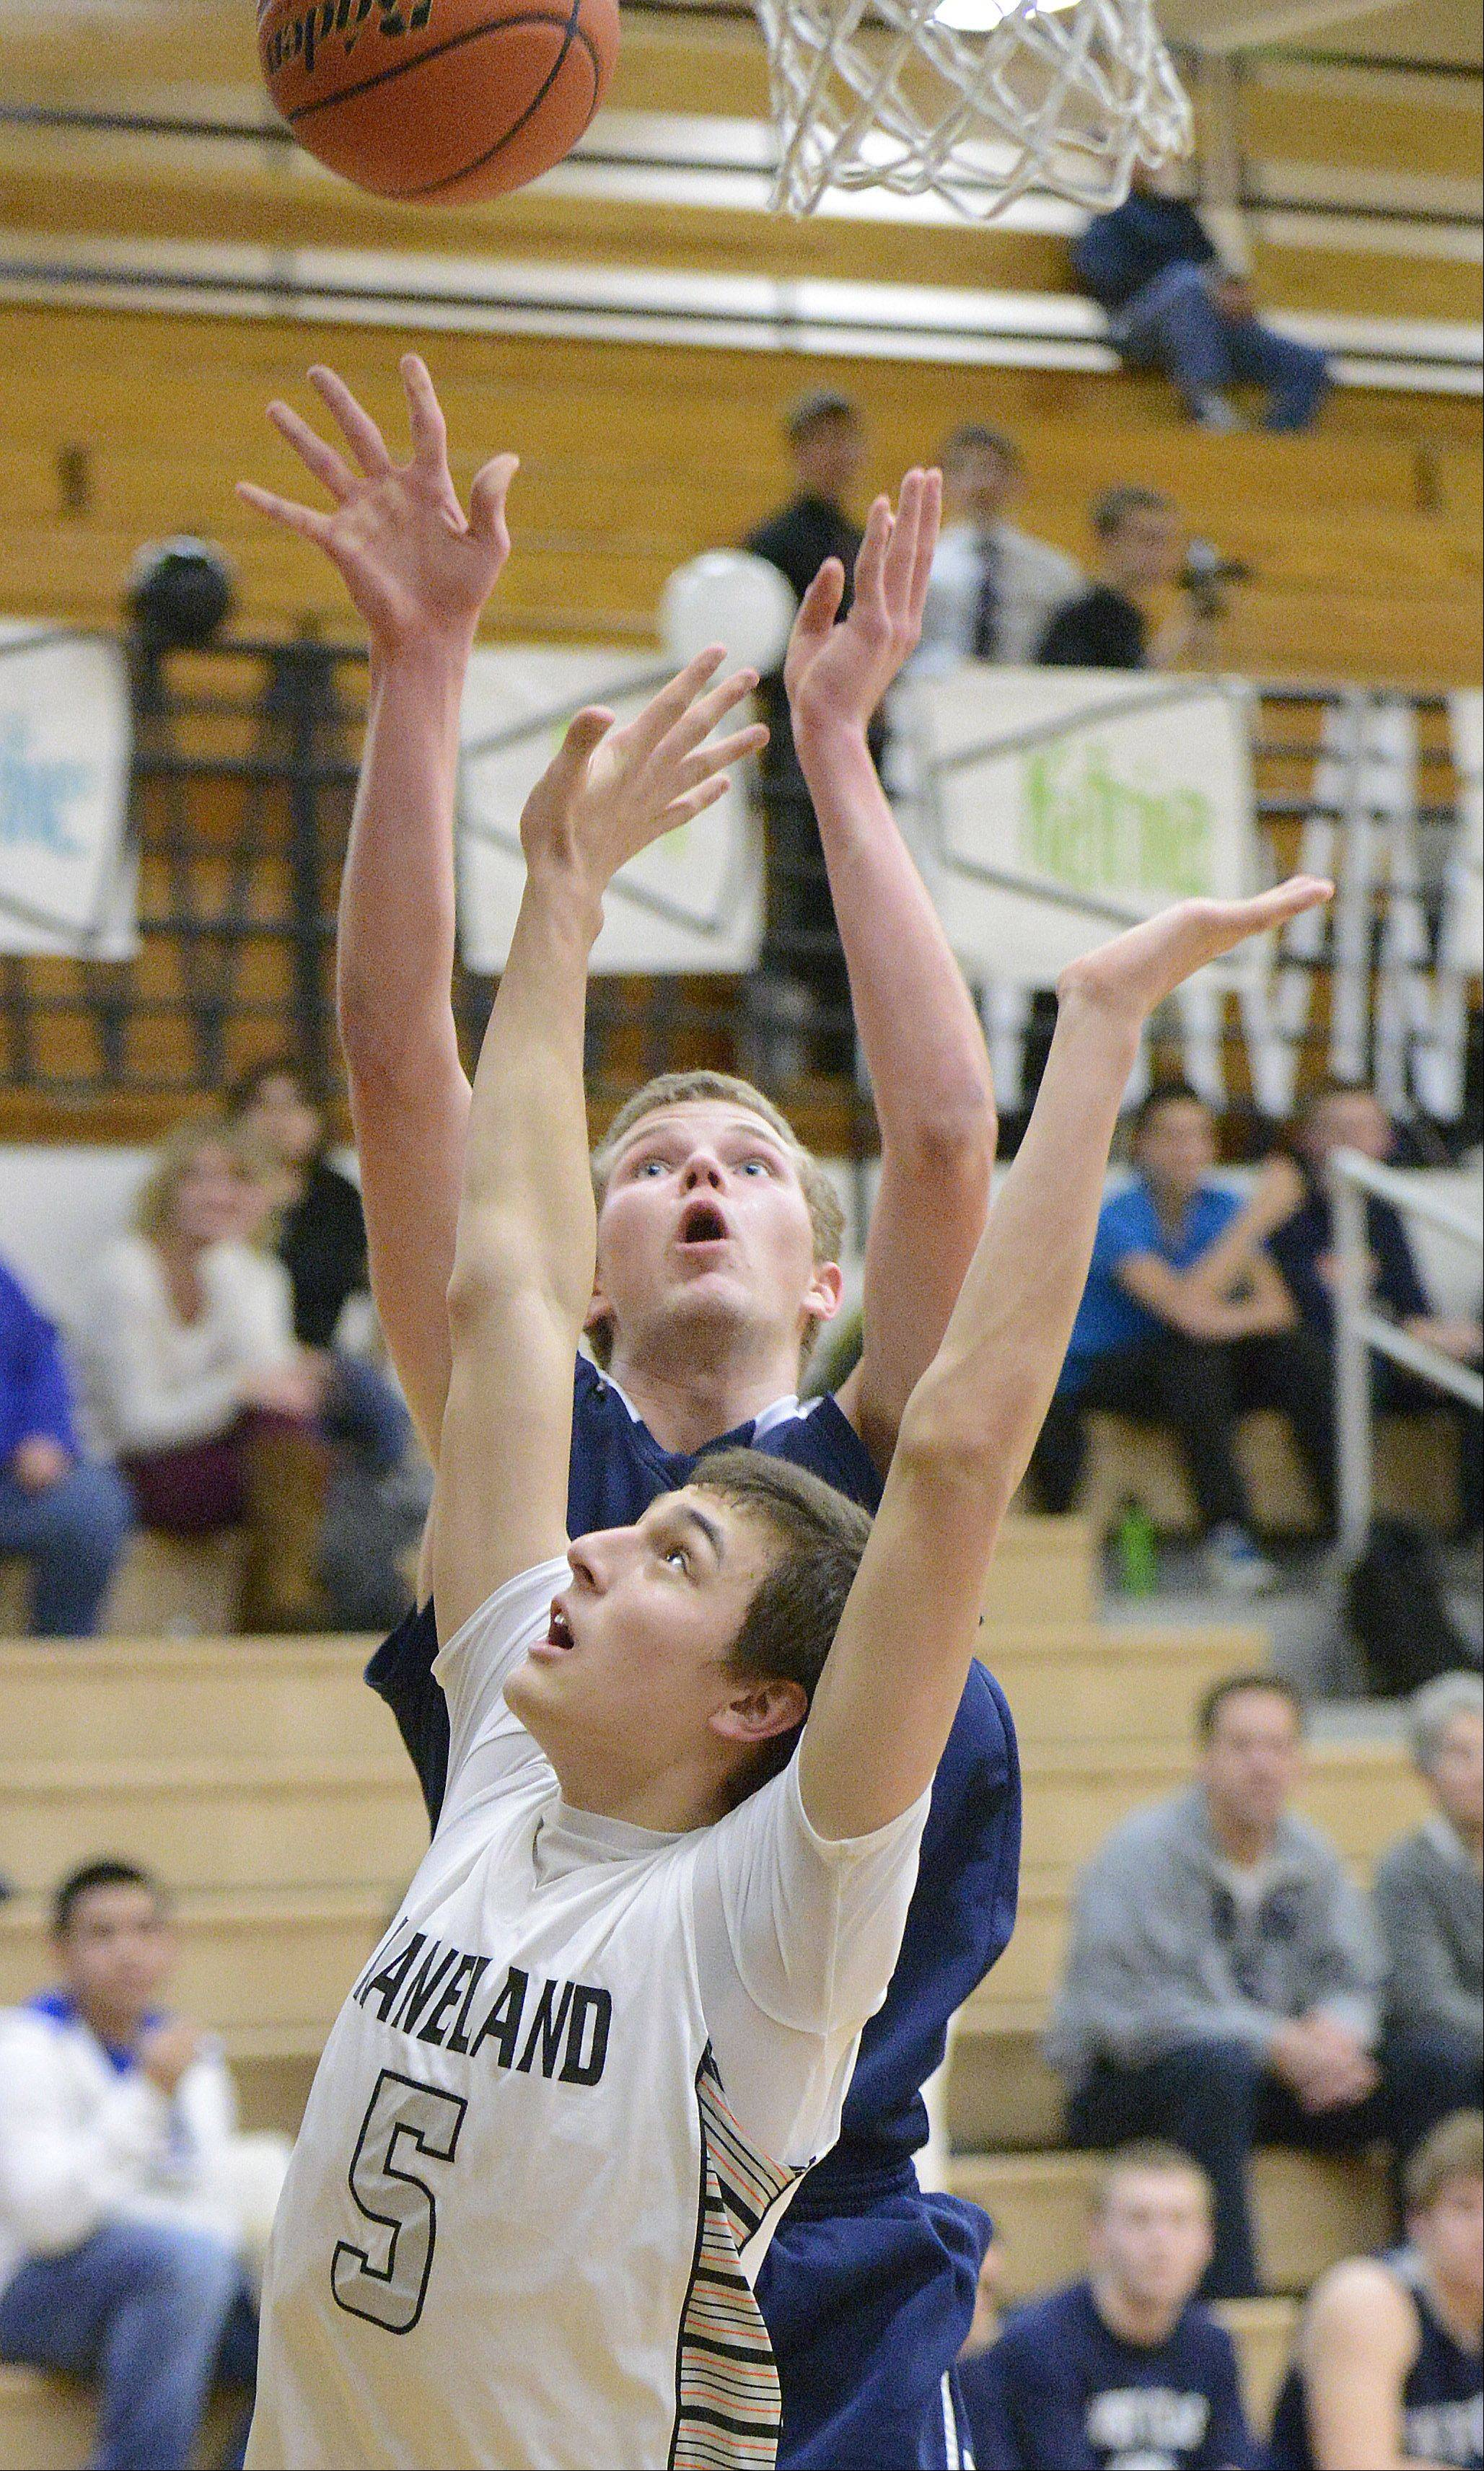 West Chicago's Mike Zajac shoots over a block by Kaneland's John Pruett in the third quarter.